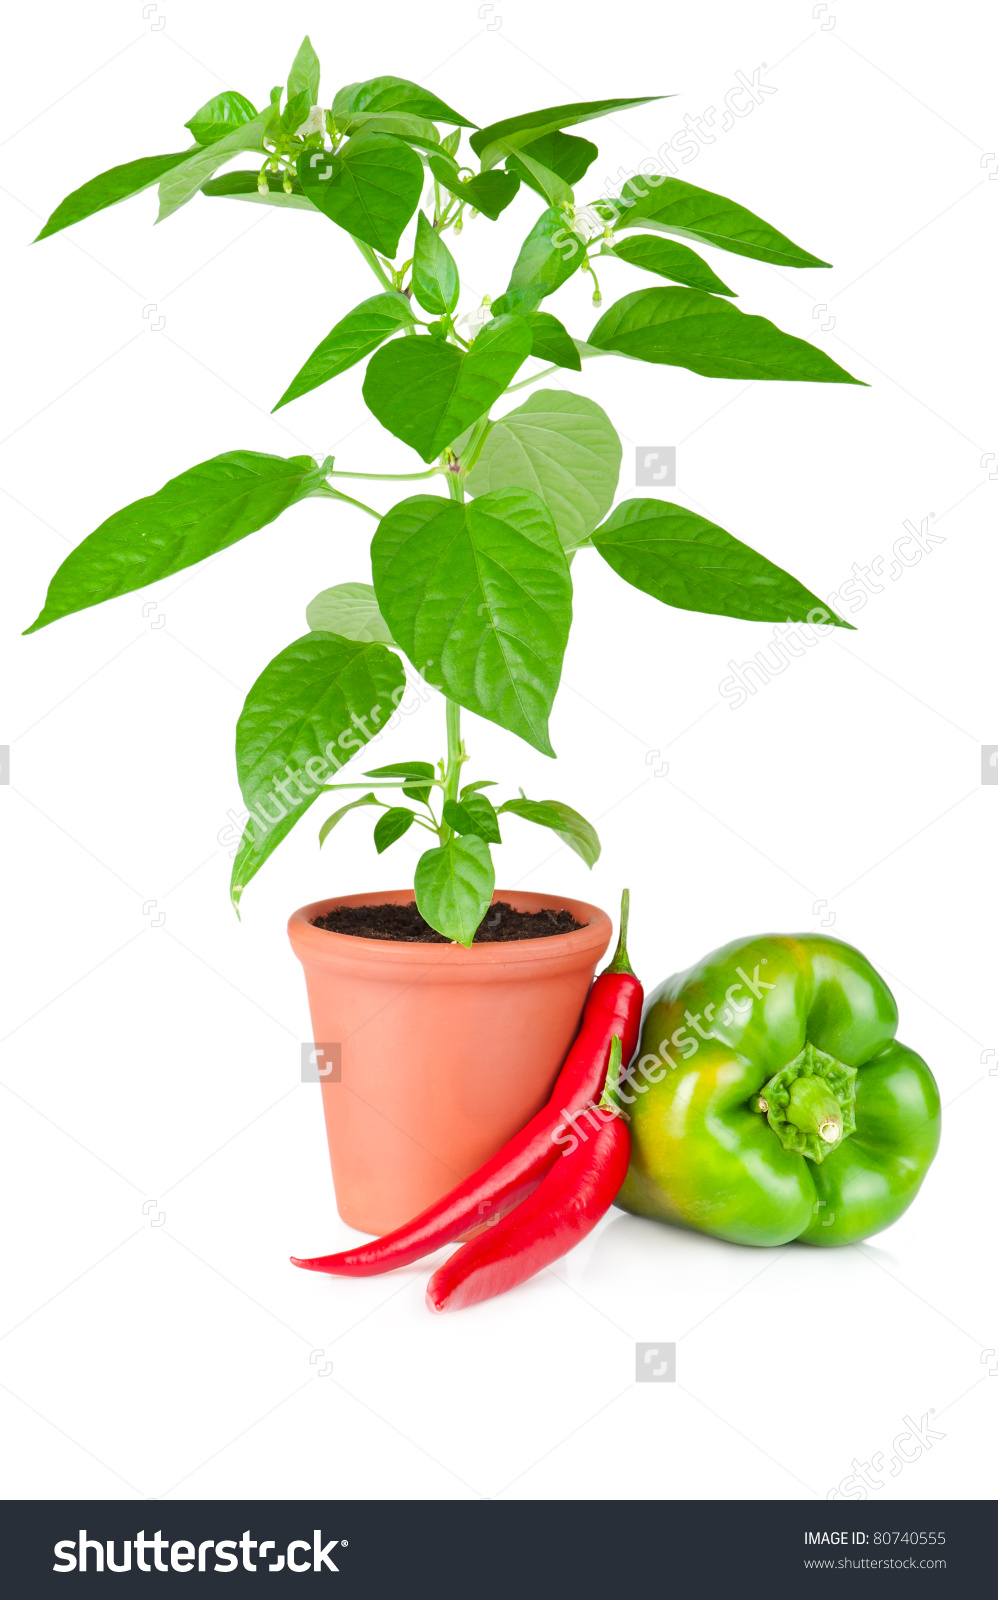 Pepper Plant White Flowers Growing Ceramic Stock Photo 80740555.